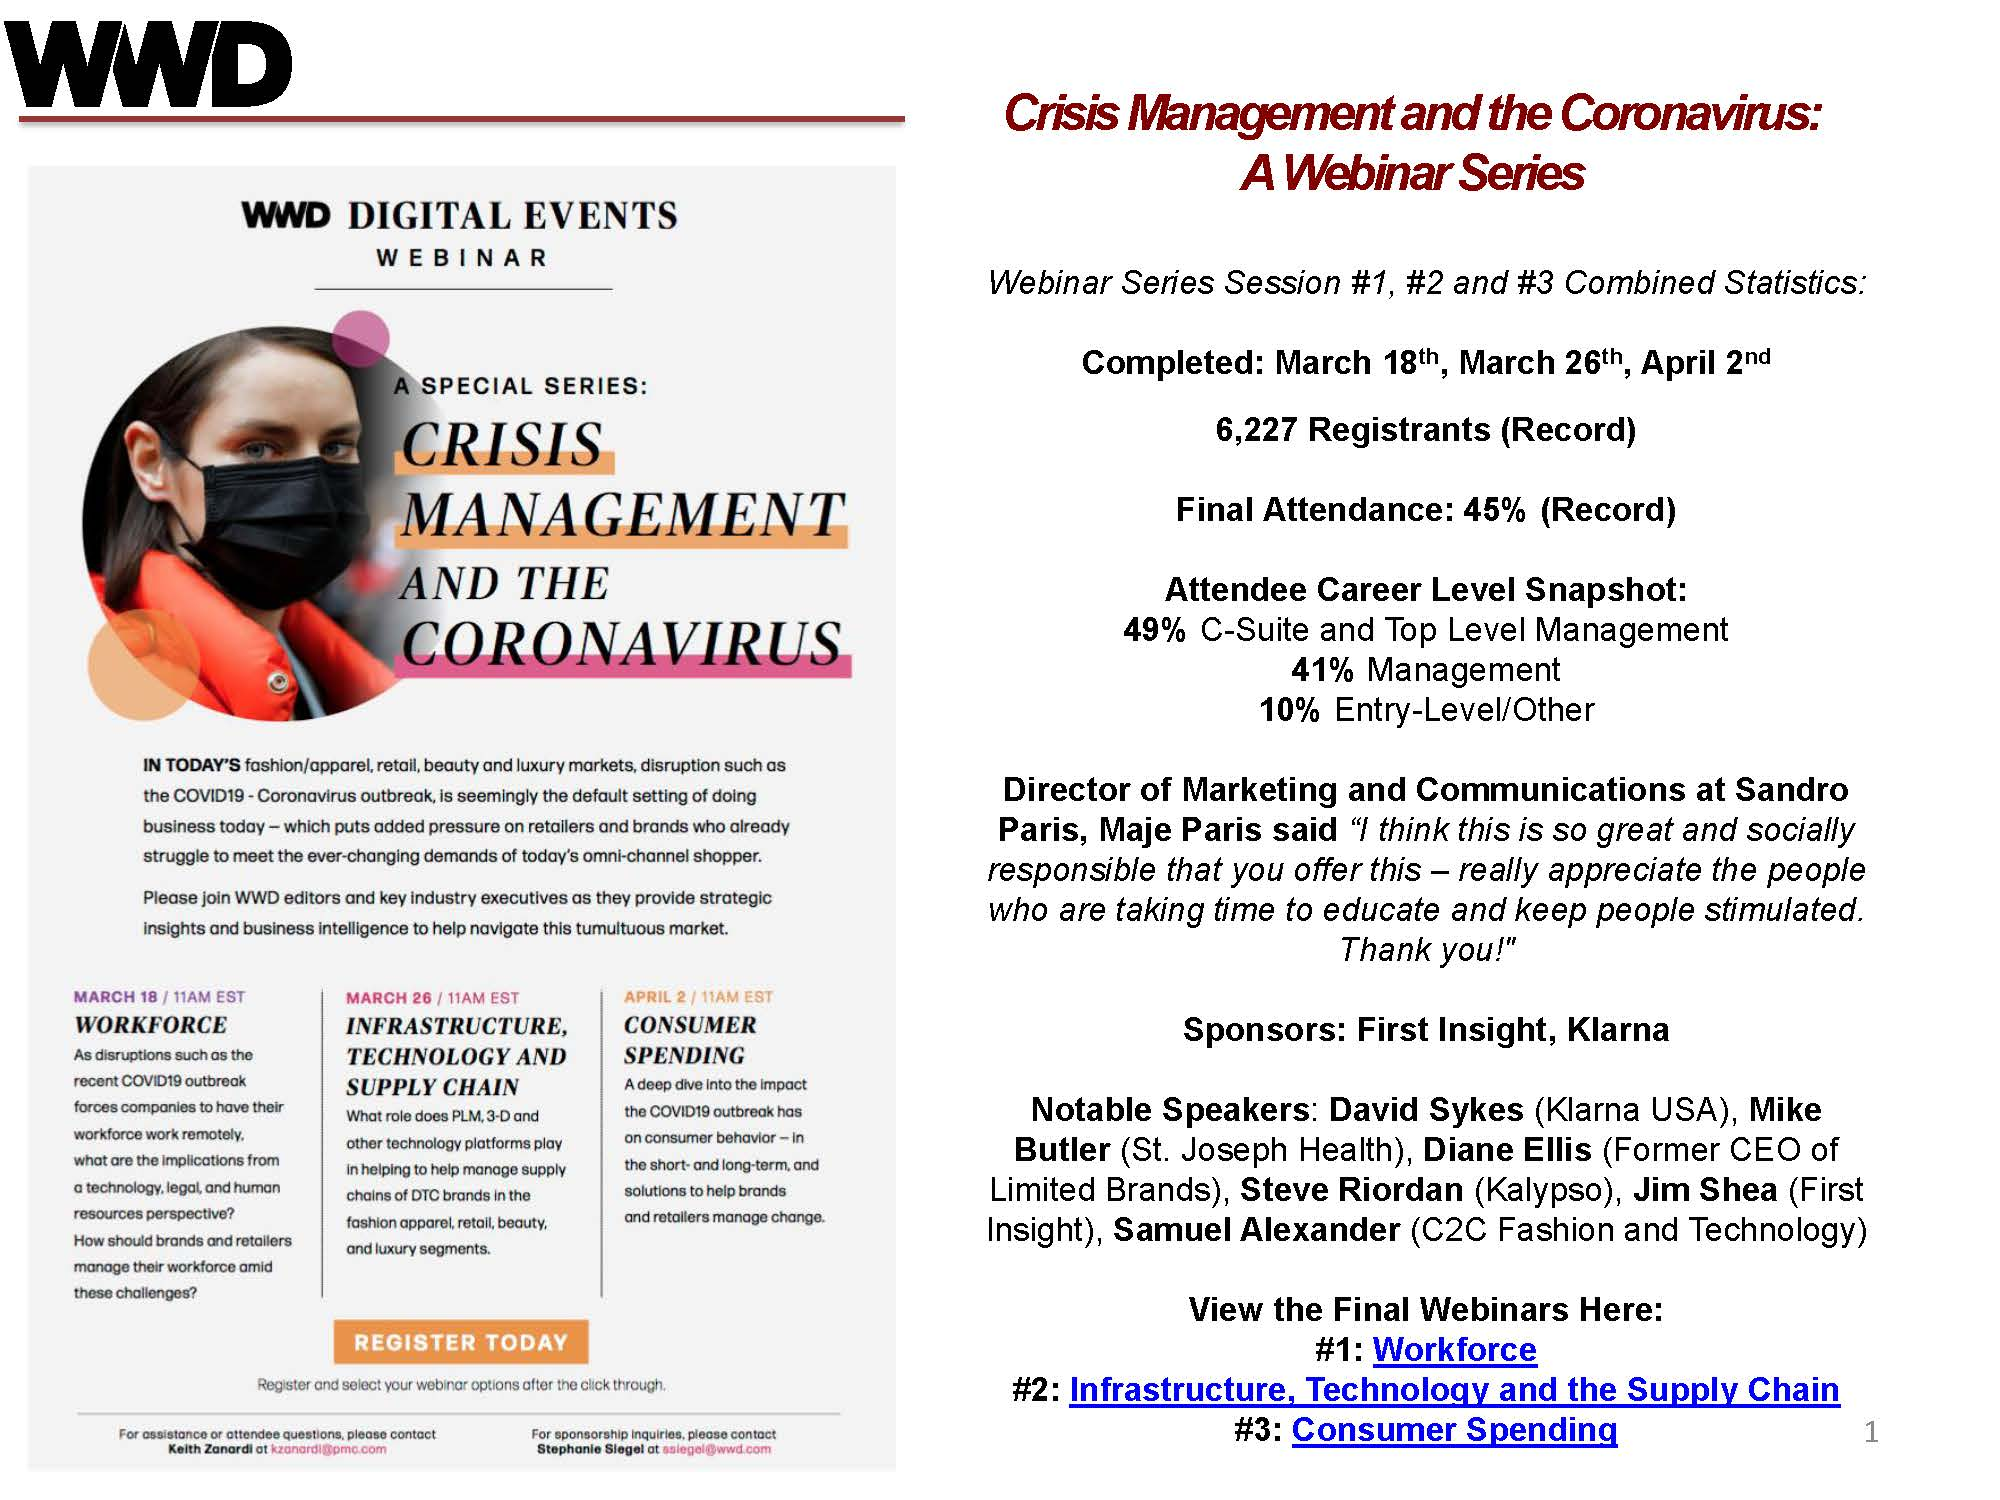 Crisis Management Series Highlights